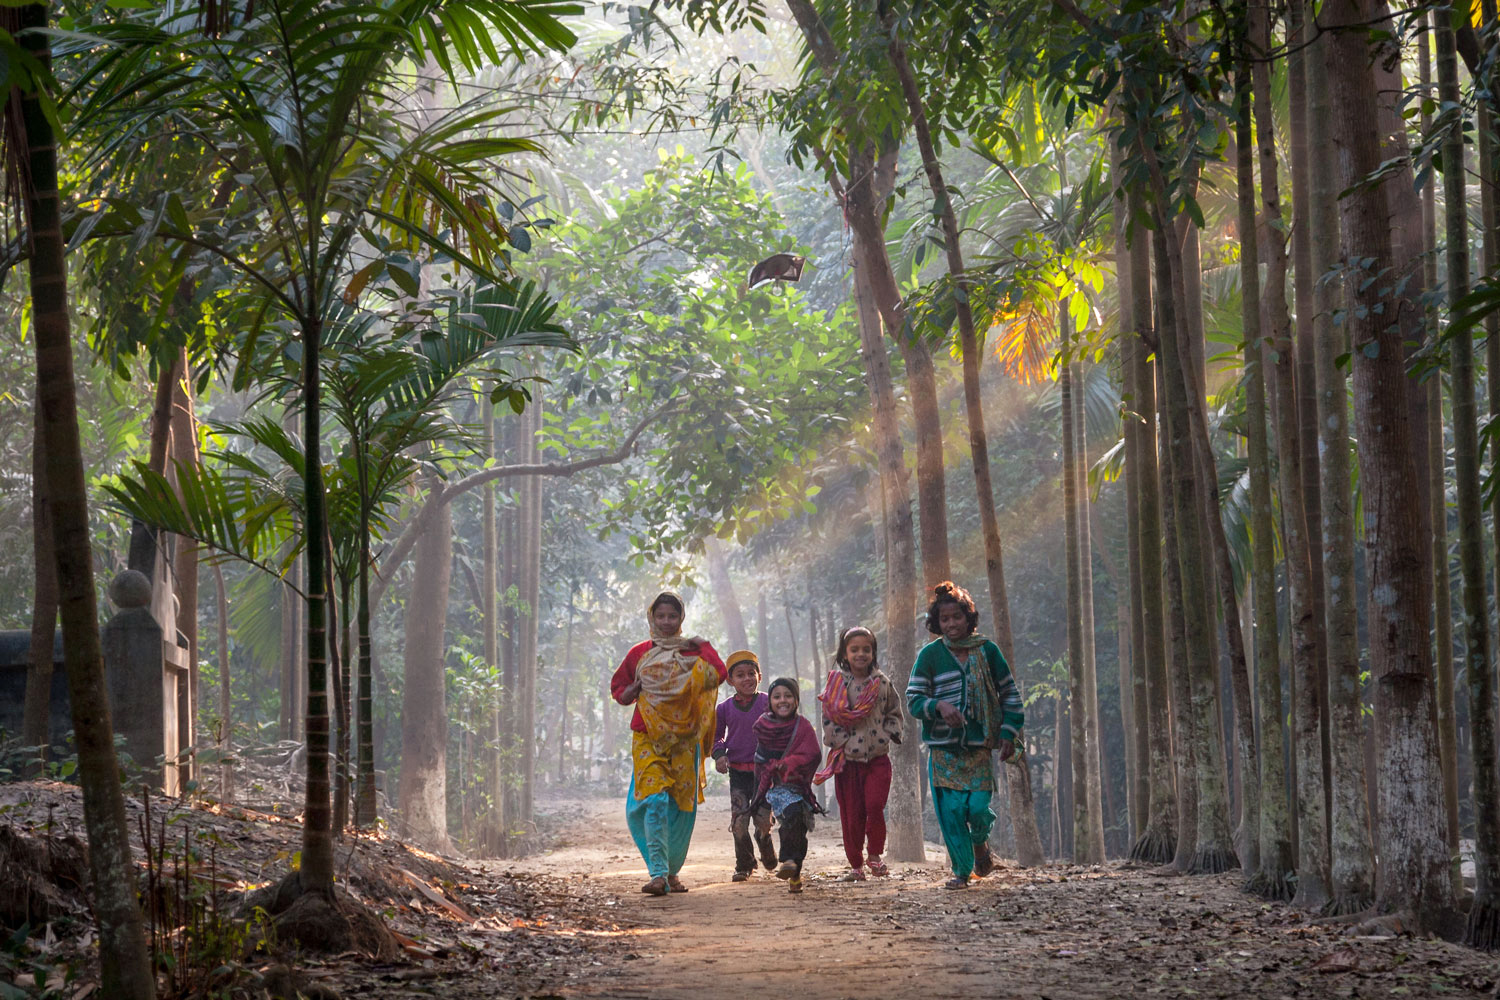 Bangladesh-children-morning-running-playing.jpg